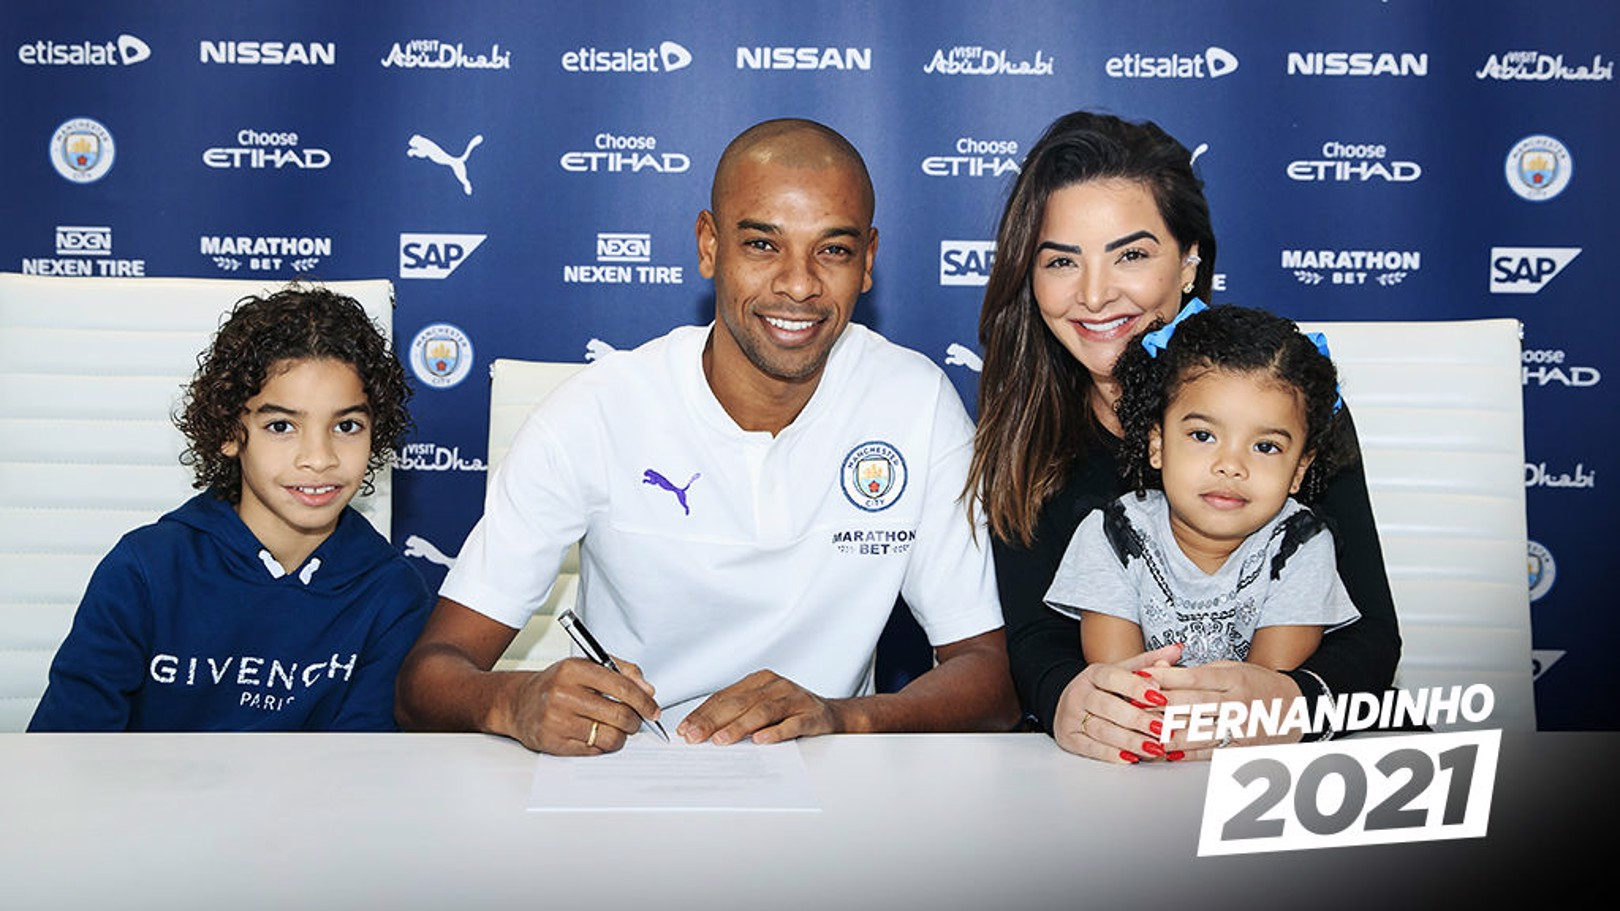 FERNA 2021: Our Brazilian star has penned a contract extension